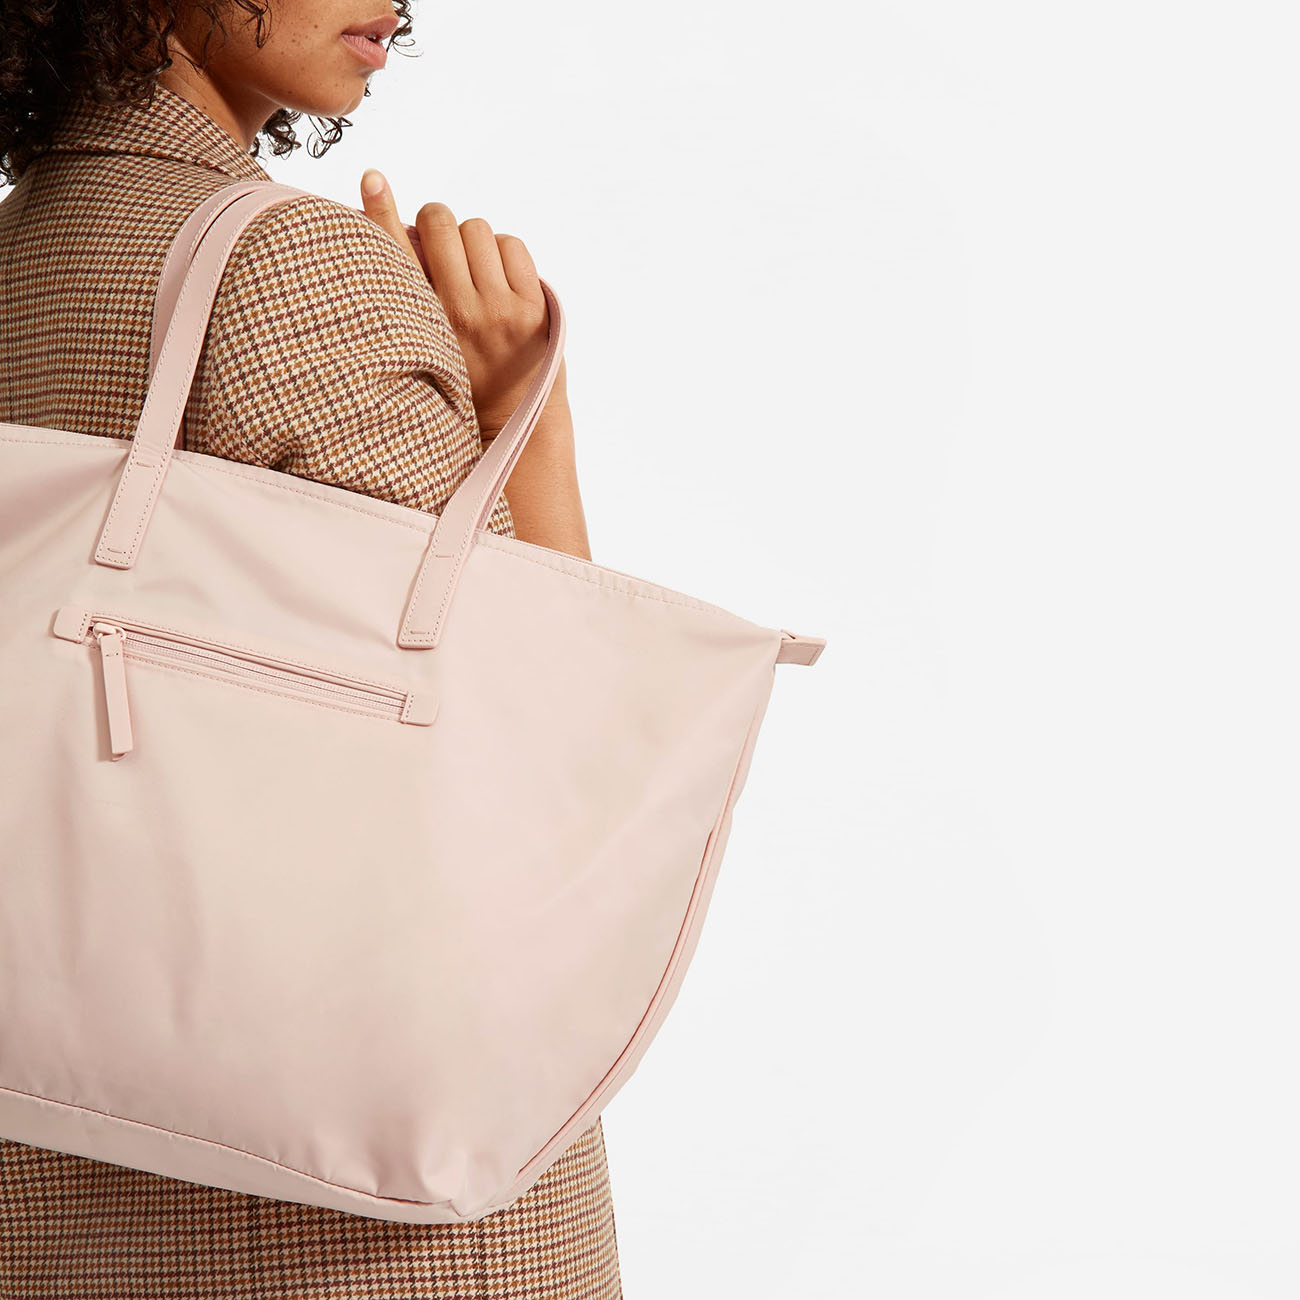 pale pink ReNew Traveler Tote from Everlane